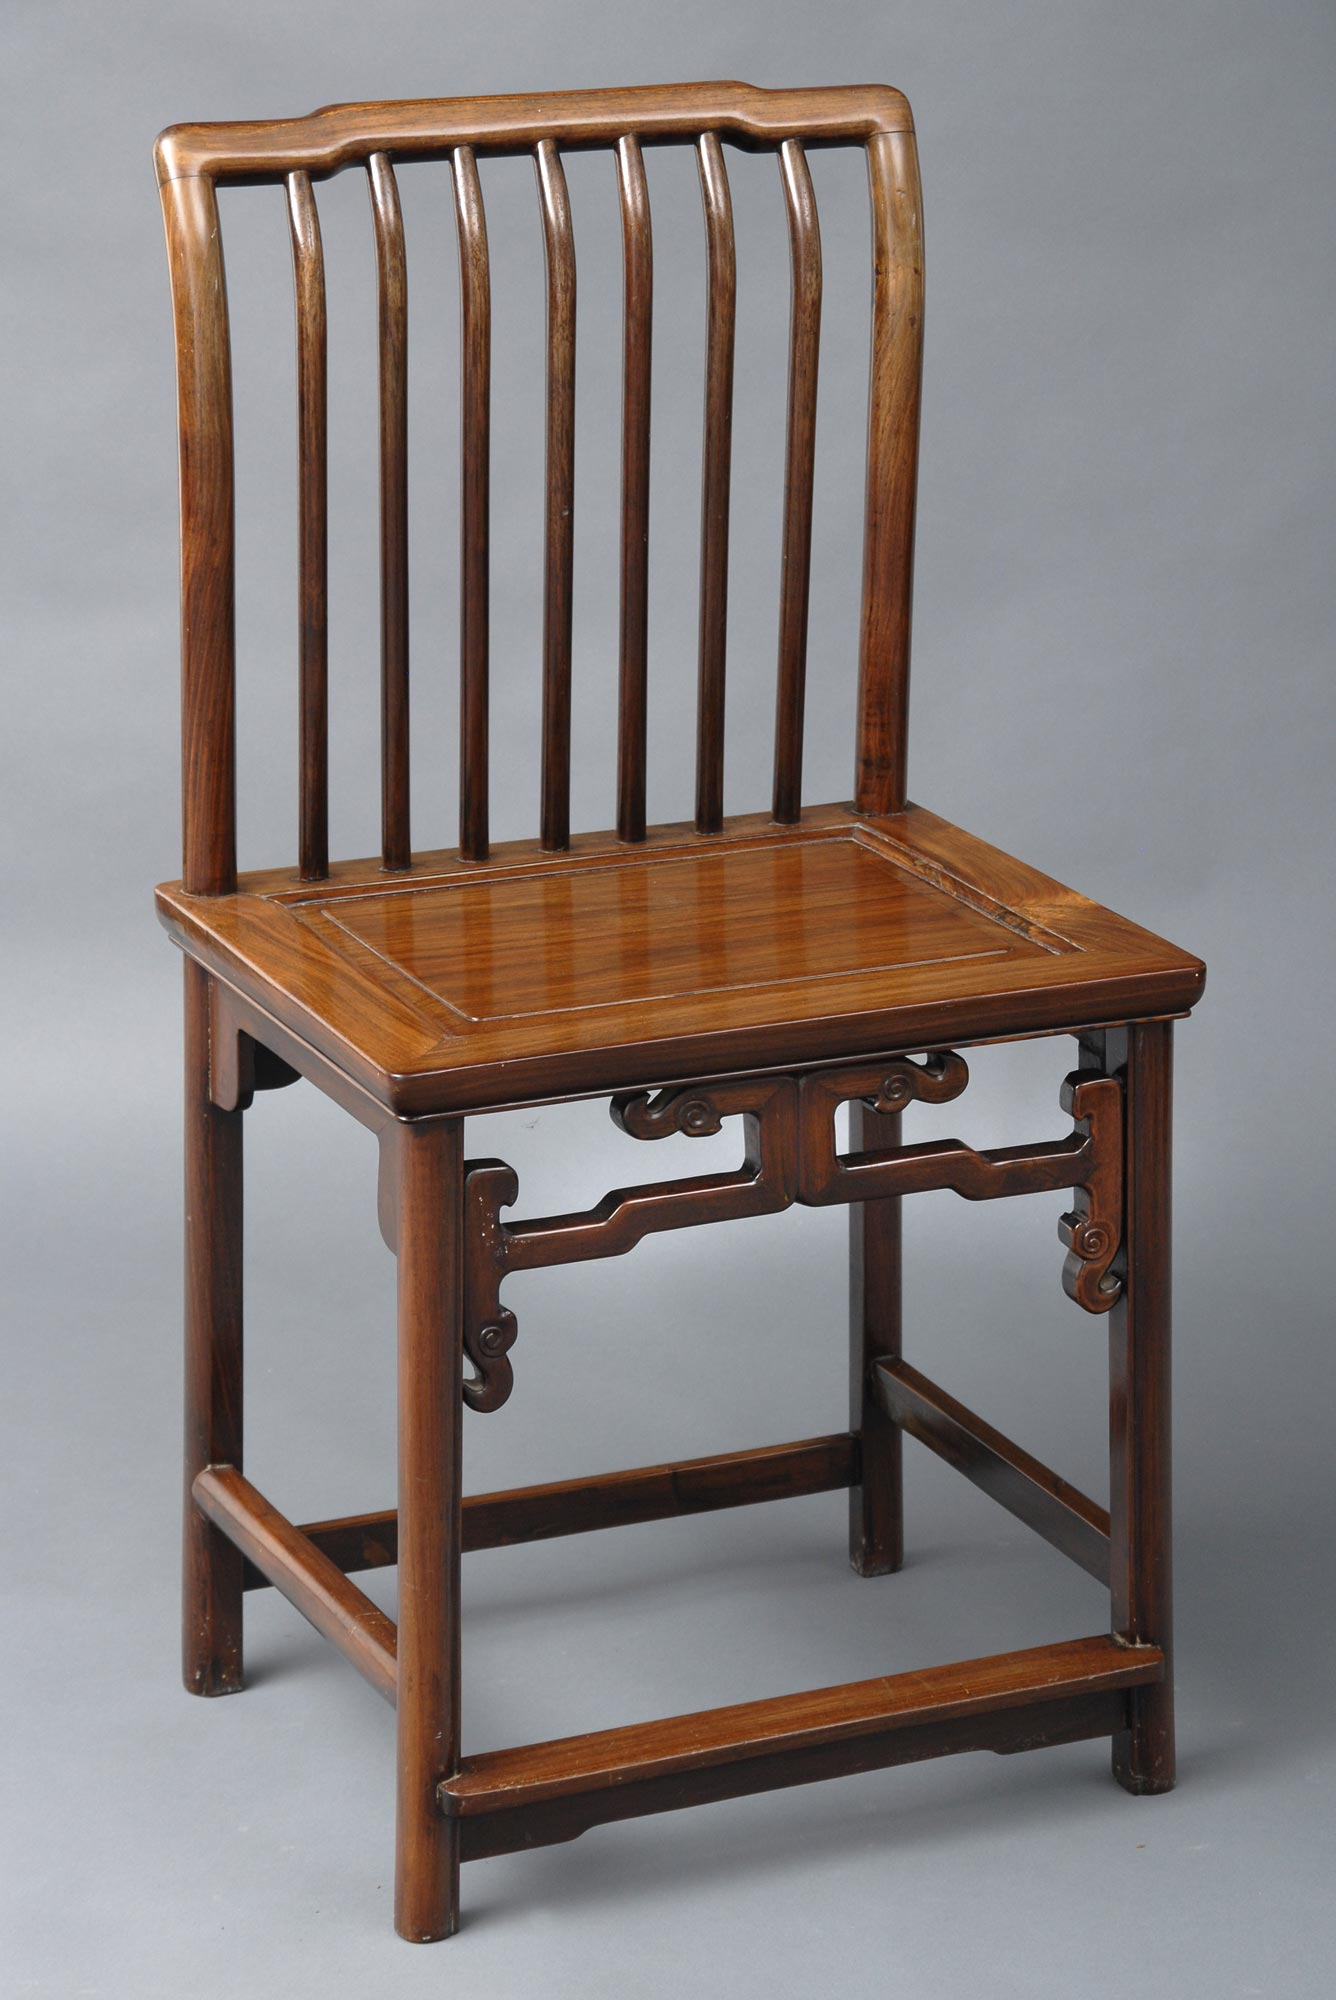 Chinese Antique Chair - Product » Chinese Chair